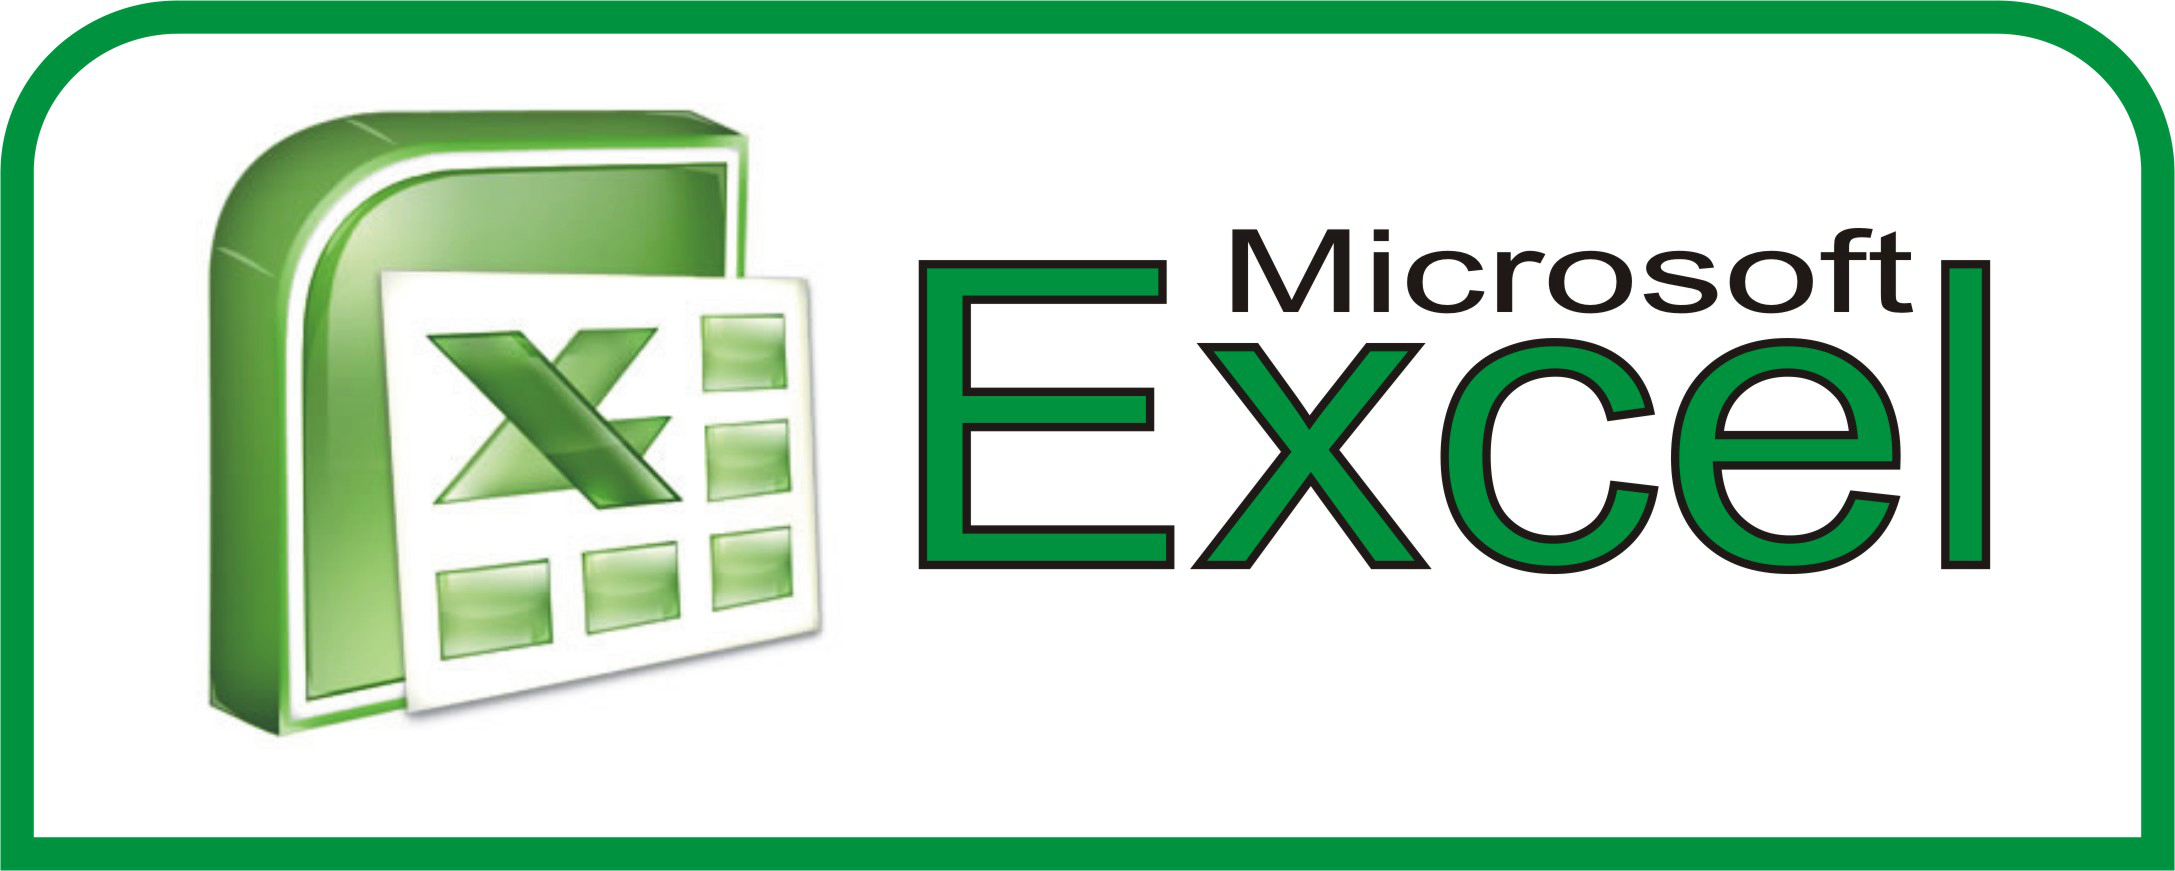 Ediblewildsus  Mesmerizing  Excel Shortcuts You Probably Didnt Know About  Techdissected With Gorgeous Name Box Excel Definition Besides Inventory Management In Excel Free Download Furthermore Subtotal Excel Function With Astonishing Parking In Excel London Also Excel Express Cargo Tracking In Addition Us Gano Excel And Transfer Pdf To Excel As Well As Microsoft Excel Certification Exam Cost Additionally Percentage Calculation Formula In Excel From Techdissectedcom With Ediblewildsus  Gorgeous  Excel Shortcuts You Probably Didnt Know About  Techdissected With Astonishing Name Box Excel Definition Besides Inventory Management In Excel Free Download Furthermore Subtotal Excel Function And Mesmerizing Parking In Excel London Also Excel Express Cargo Tracking In Addition Us Gano Excel From Techdissectedcom